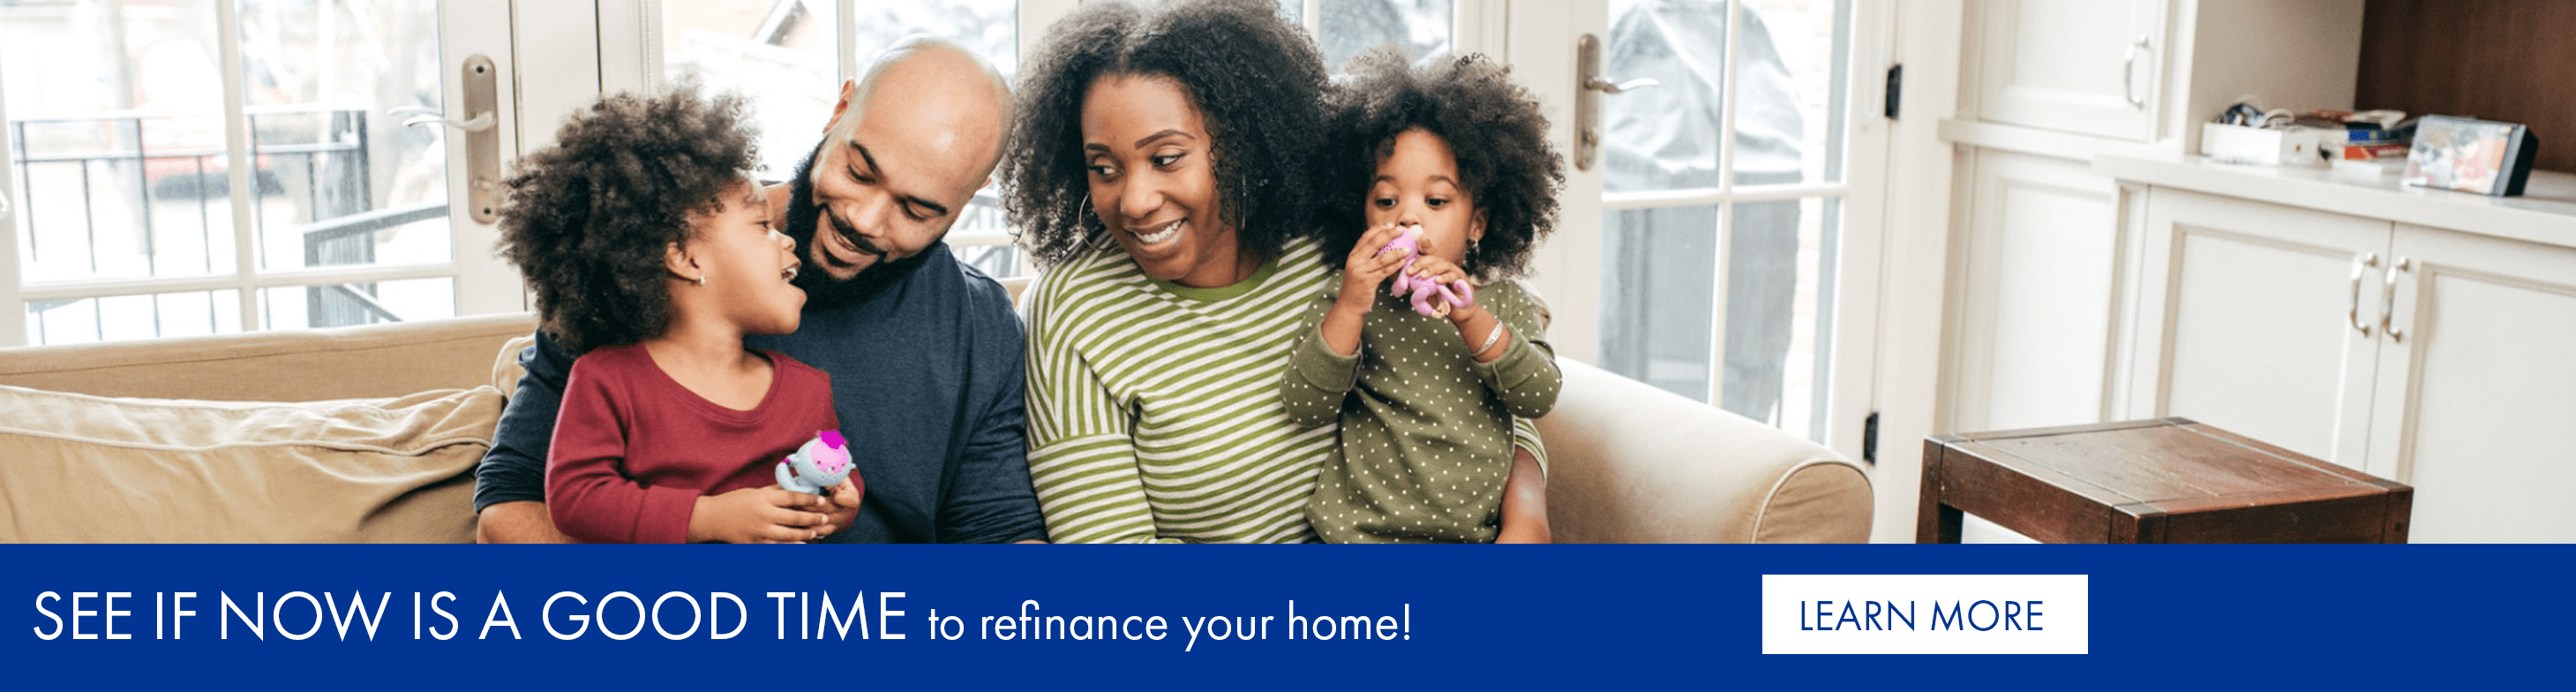 See if now is a good time to refinance your home!